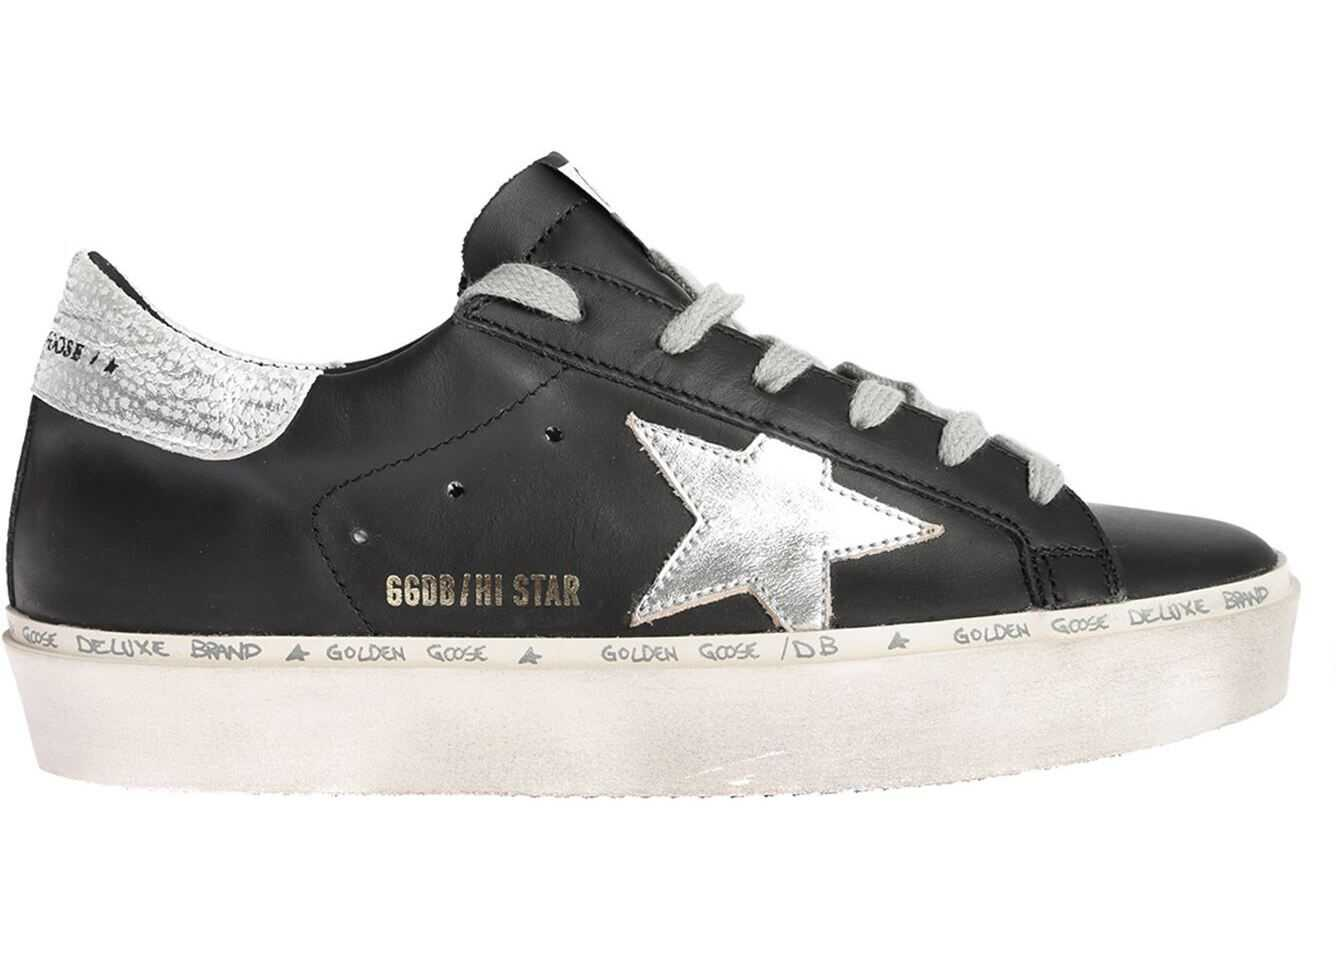 Golden Goose Hi Star Sneakers In Black With Laminated Logo Black